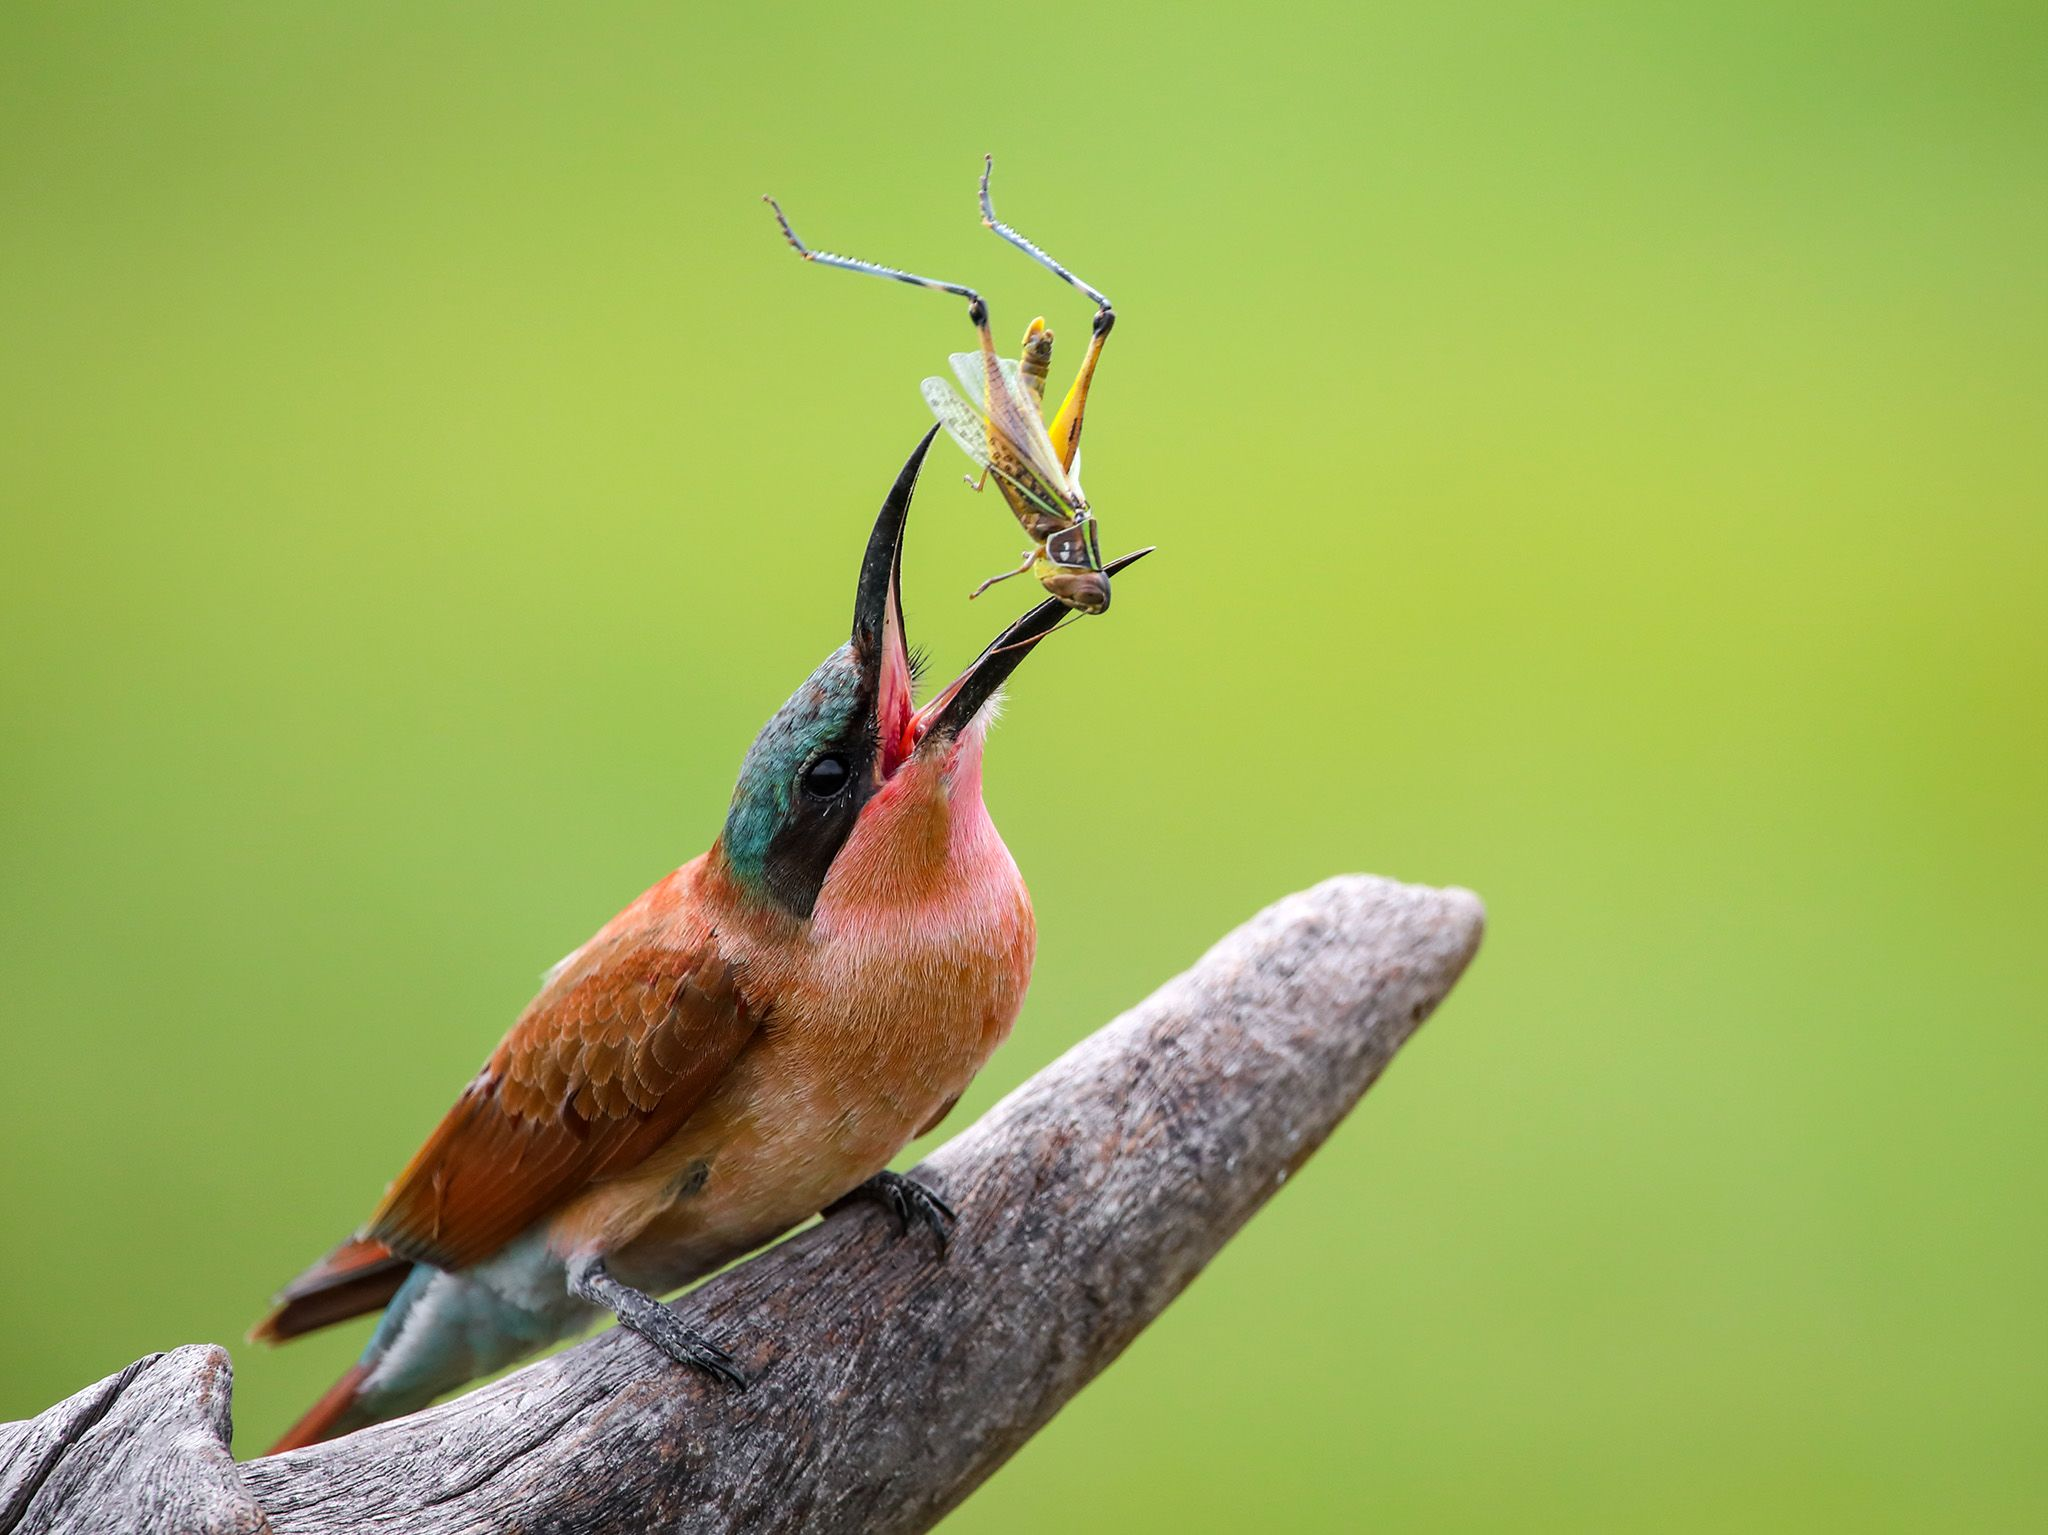 Botswana:  A Carmine Bee-eater tosses a grasshopper into the air, rearranging it to knock off... [Foto del giorno - November 2018]